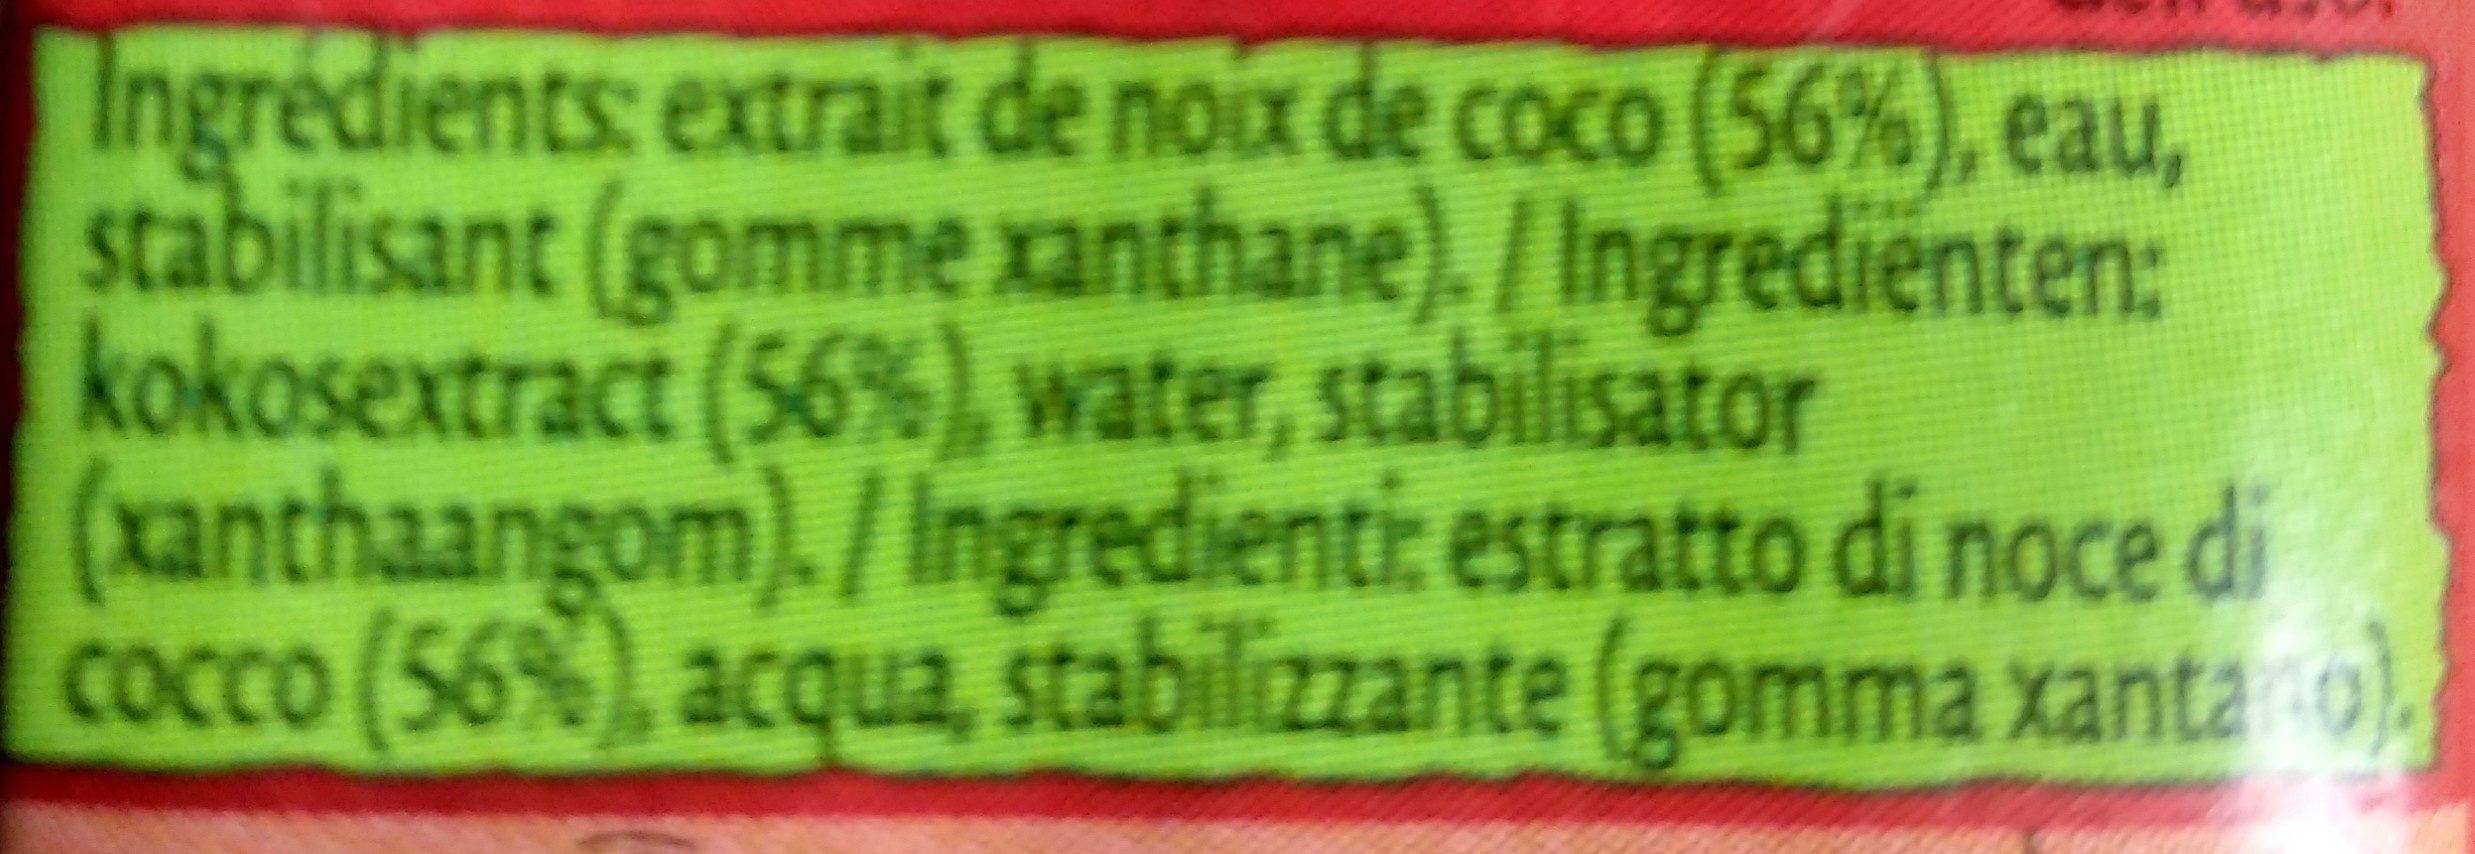 Lait de coco - Ingredients